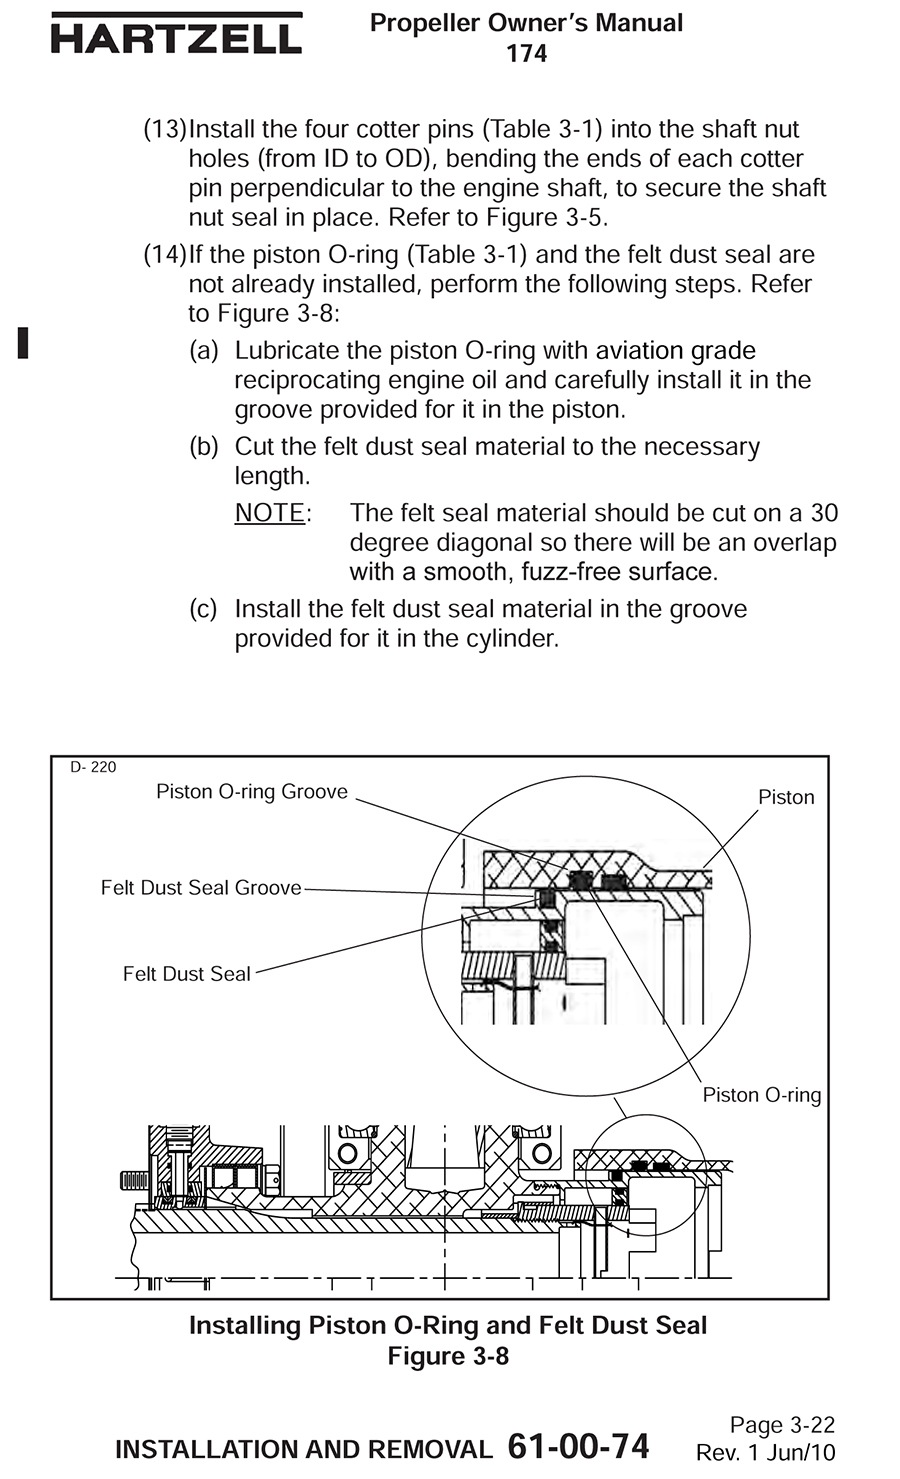 Hartzell Prop Manual 2010 page74